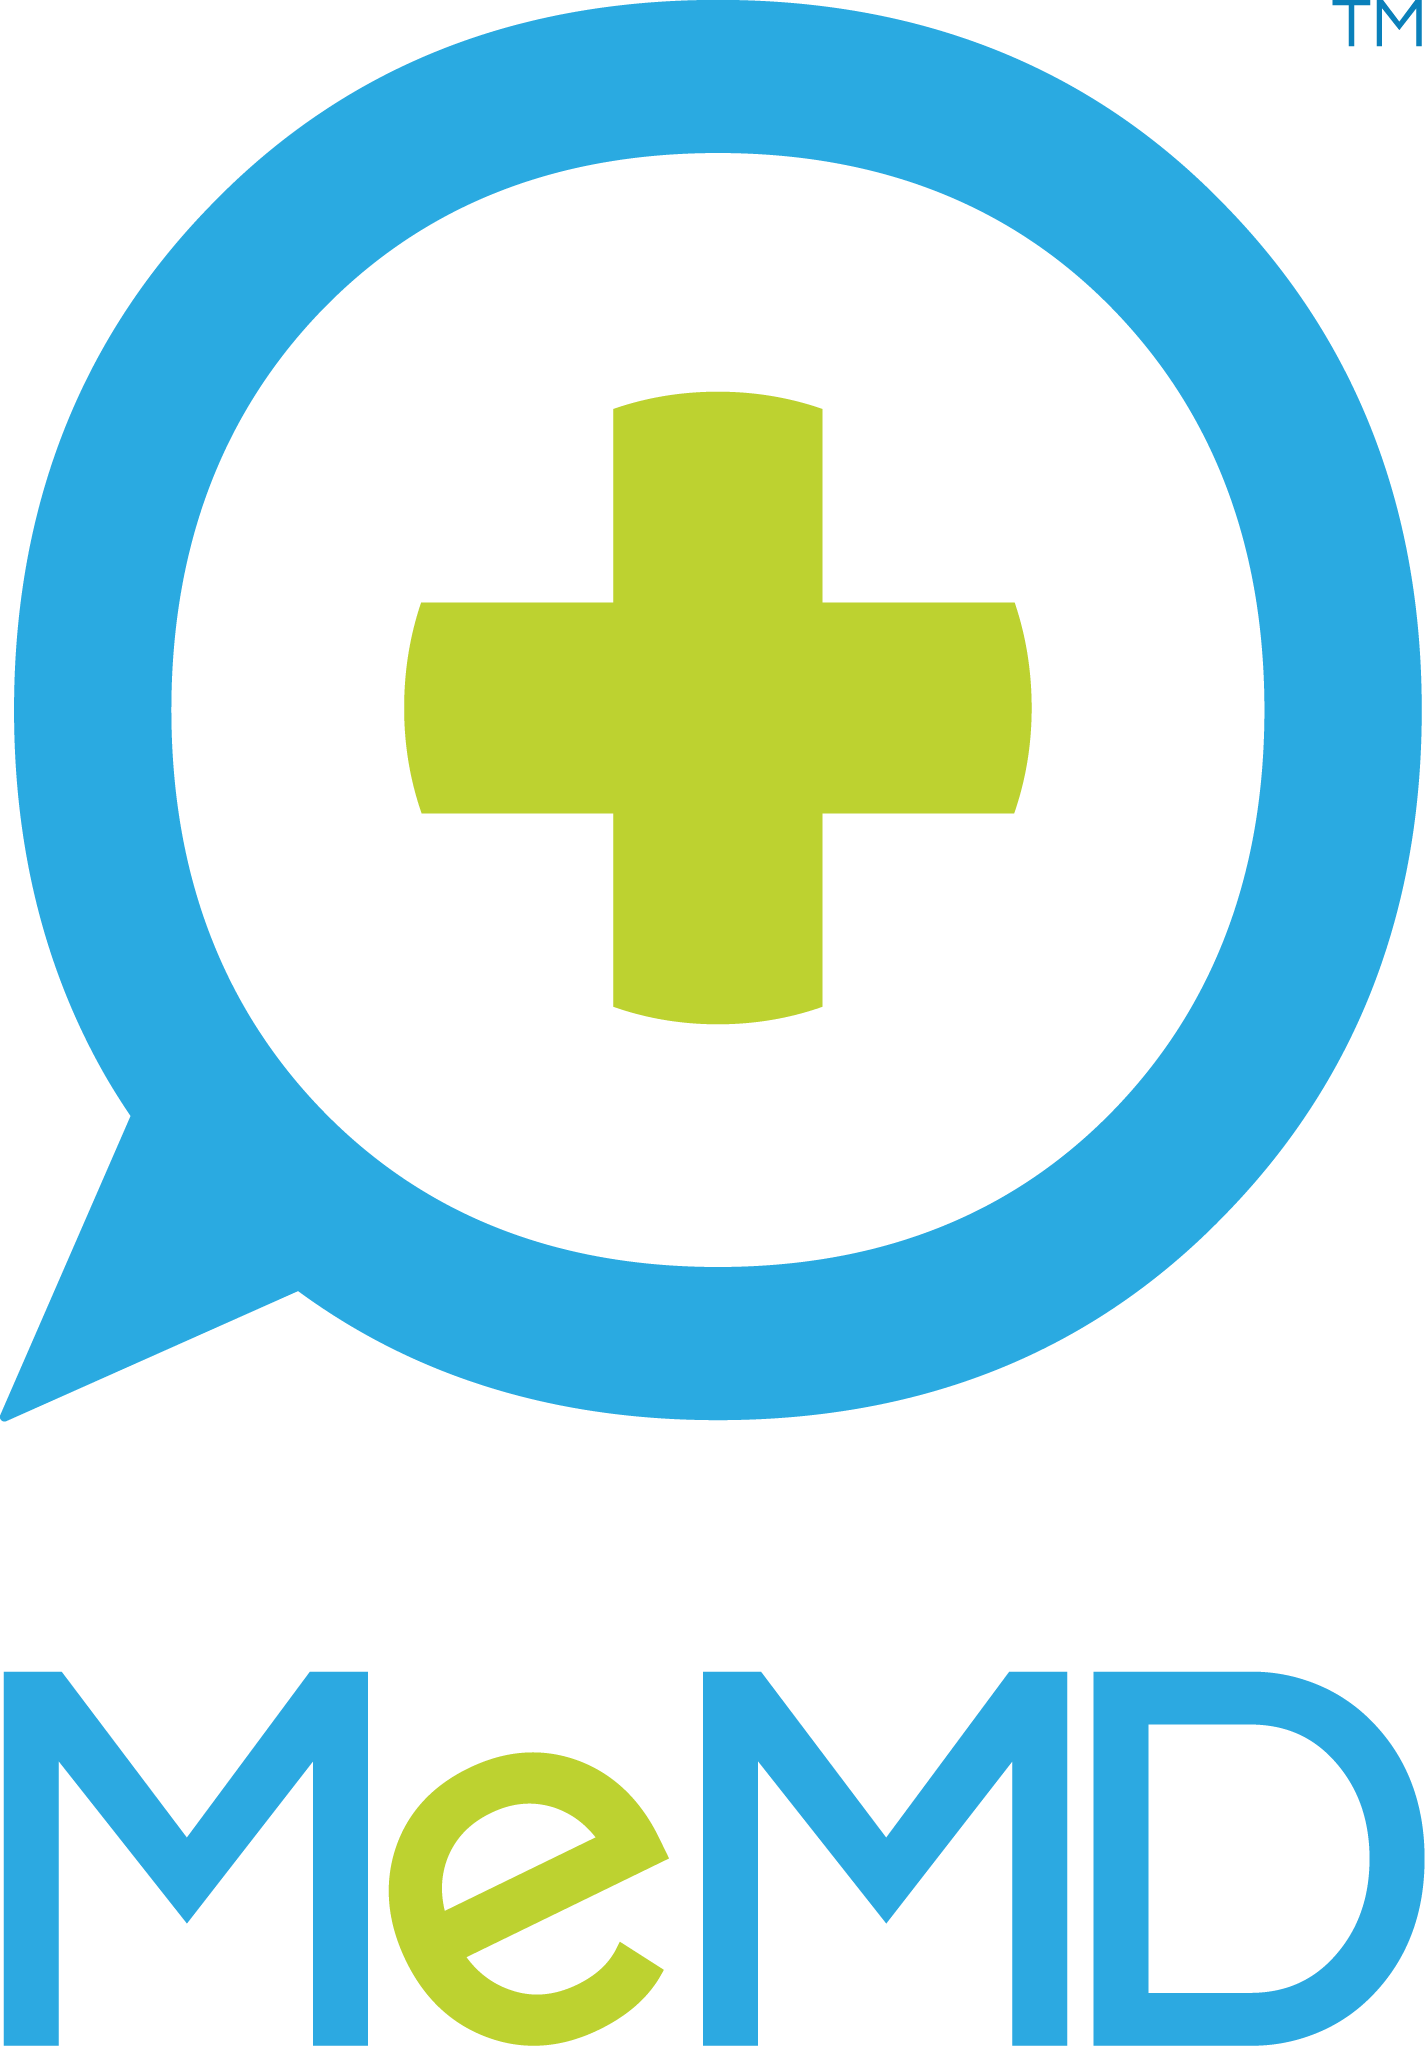 memd jobs part time telecommuting or flexible working current flexible jobs at memd